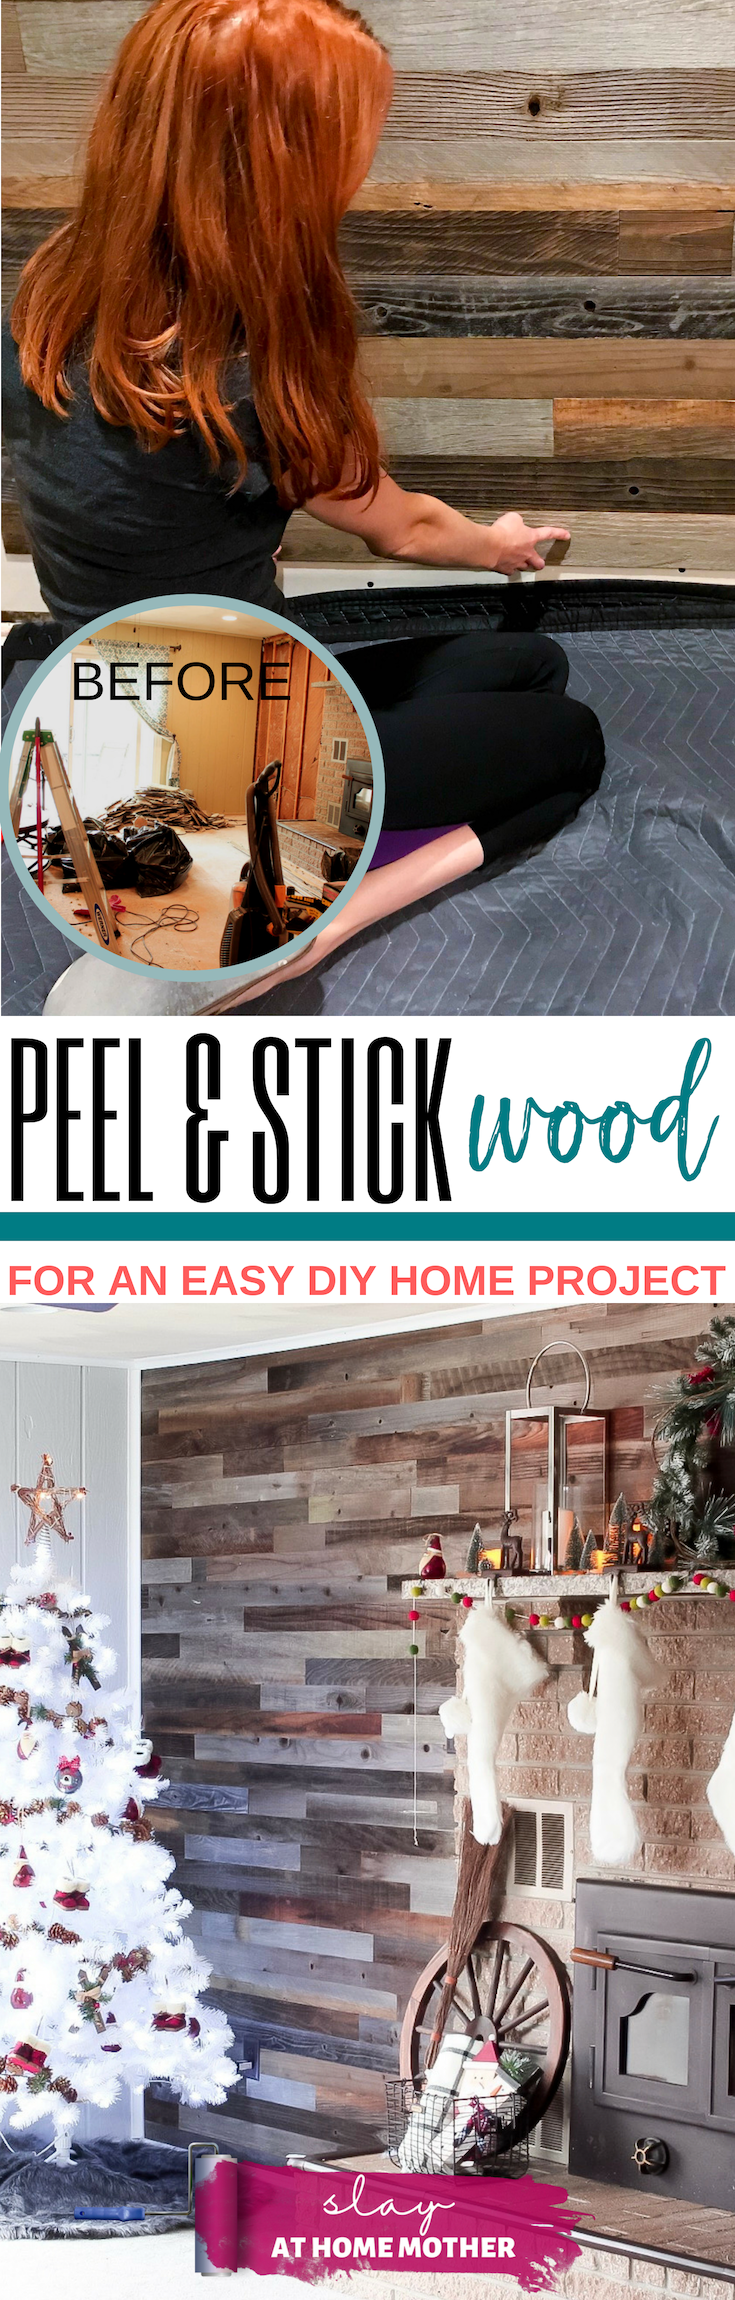 PEEL AND STICK WOOD For An Easy DIY #plankandmill #slayathomemother #diy #homeproject -- www.SLAYathomemother.com